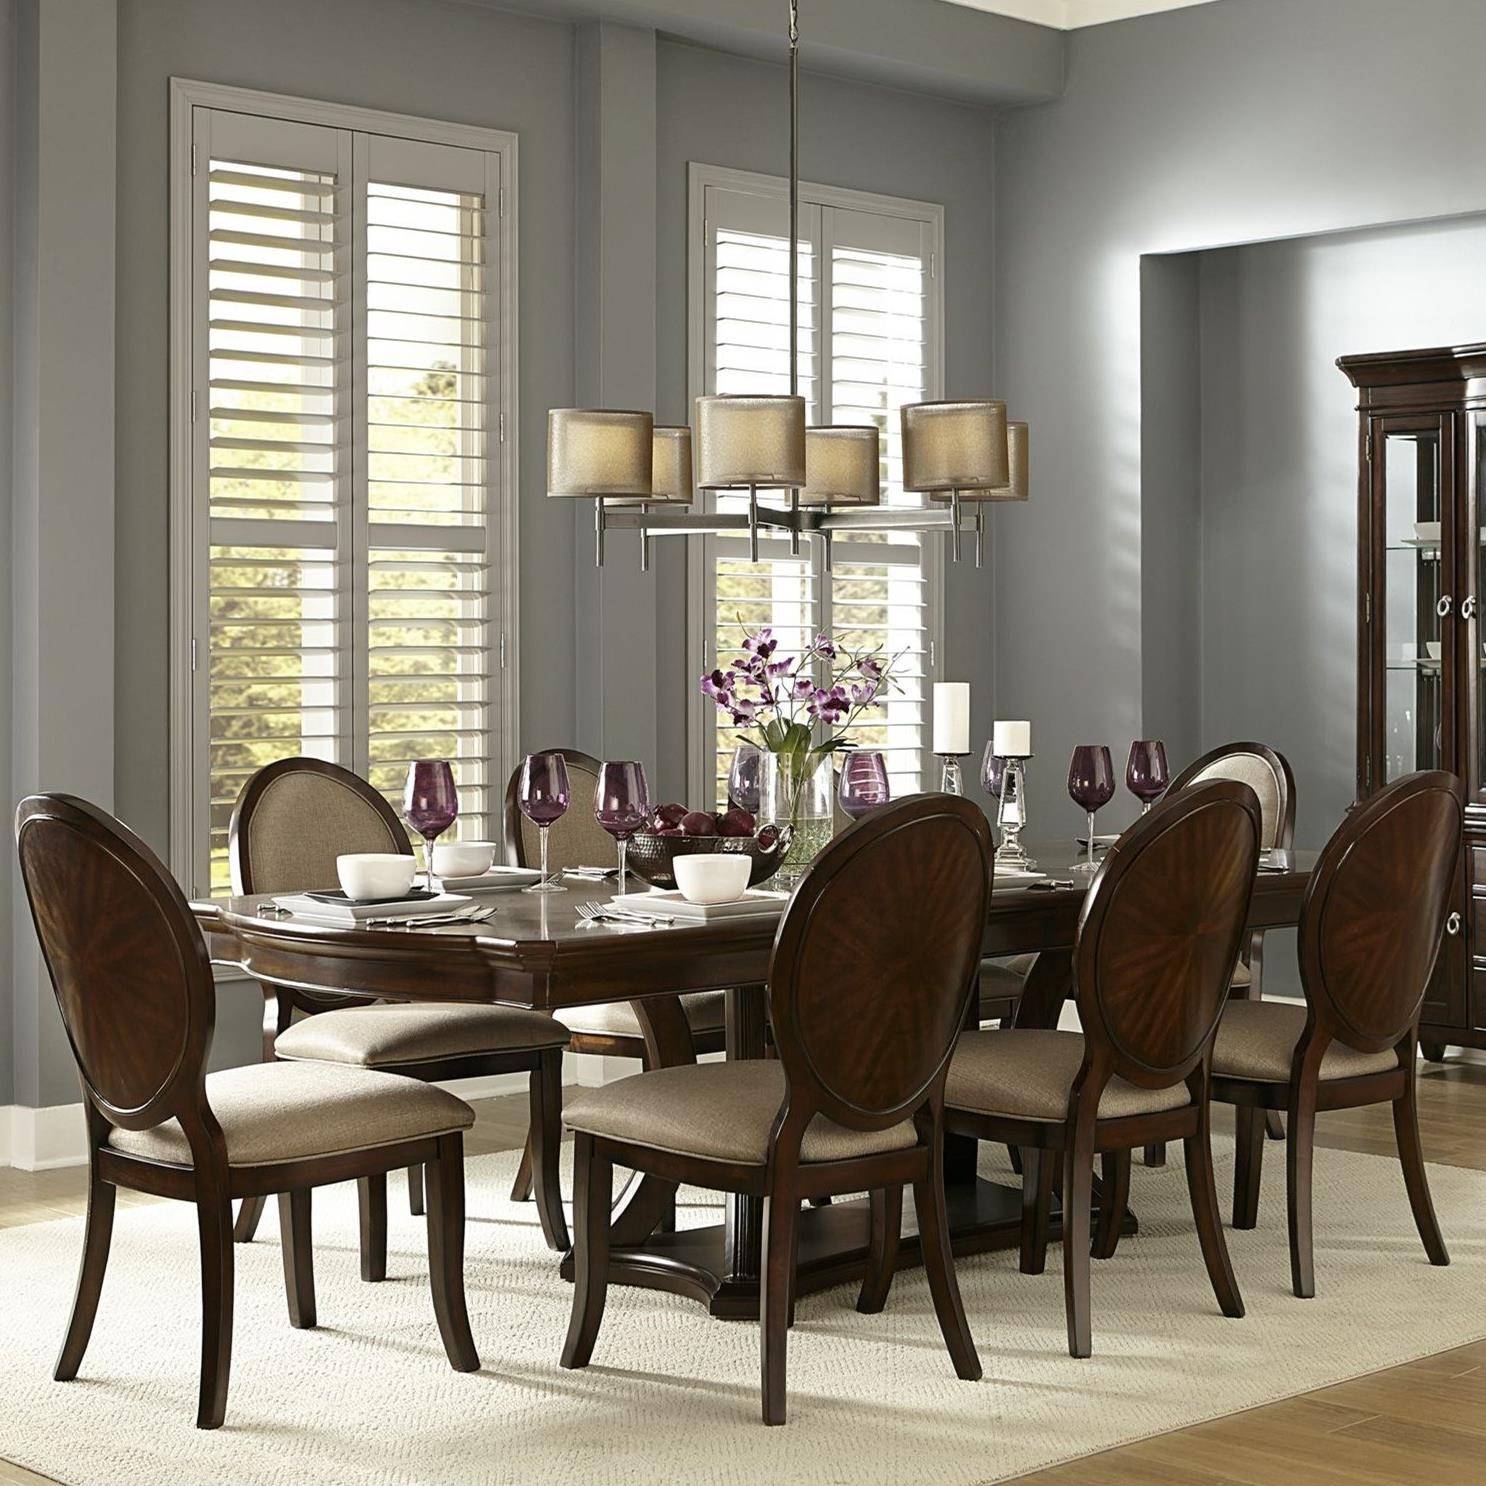 Transitional Dining Room Table: Homelegance Delavan Transitional Dining Table And Chair